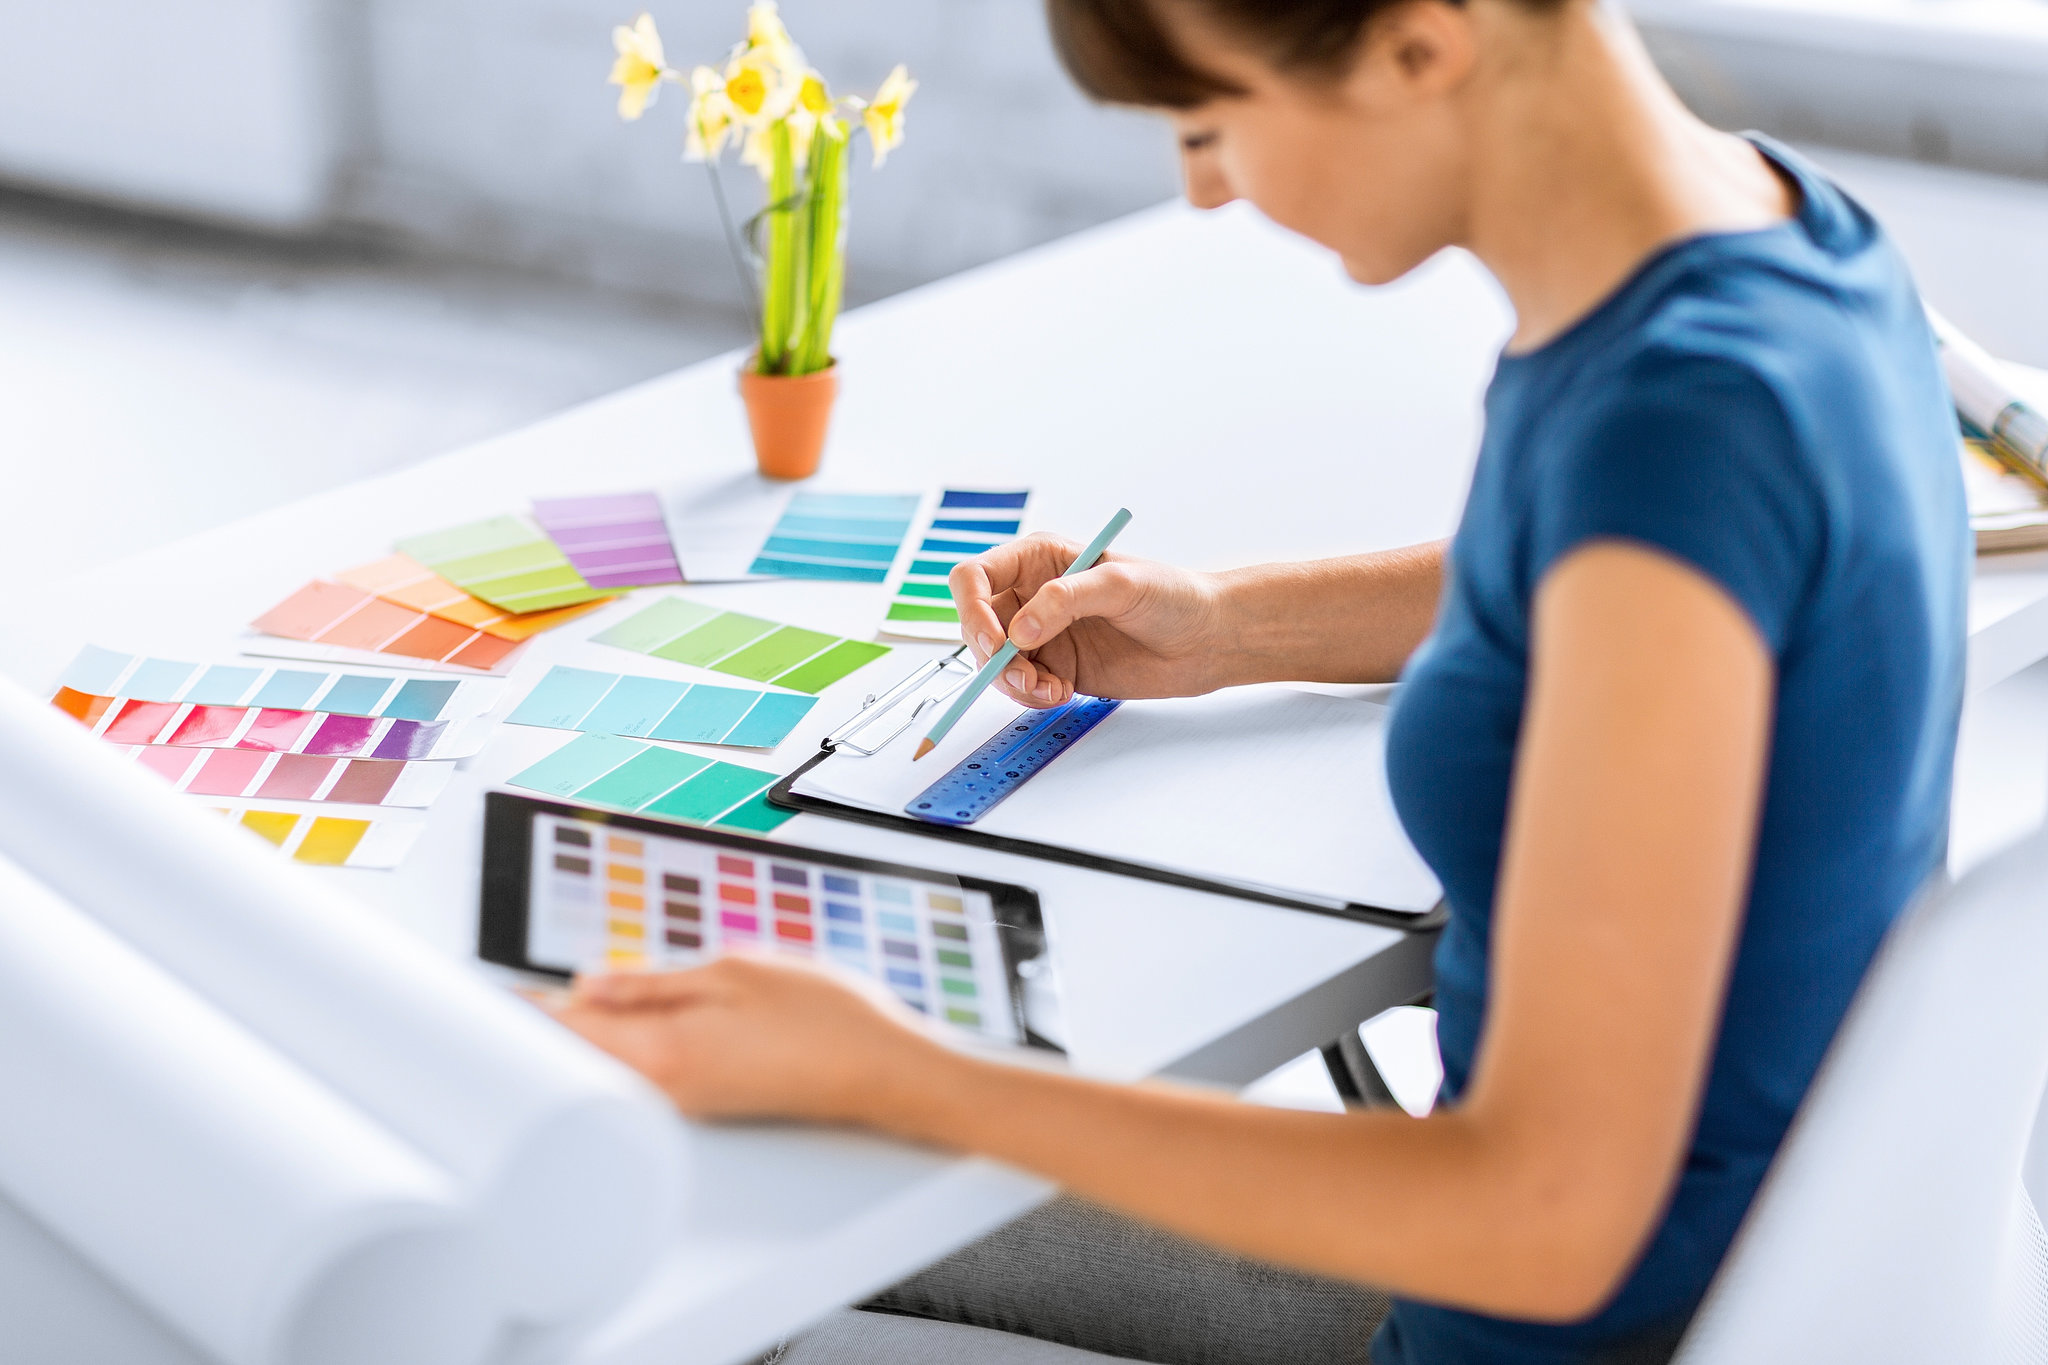 General Aspects of Graphic Designing